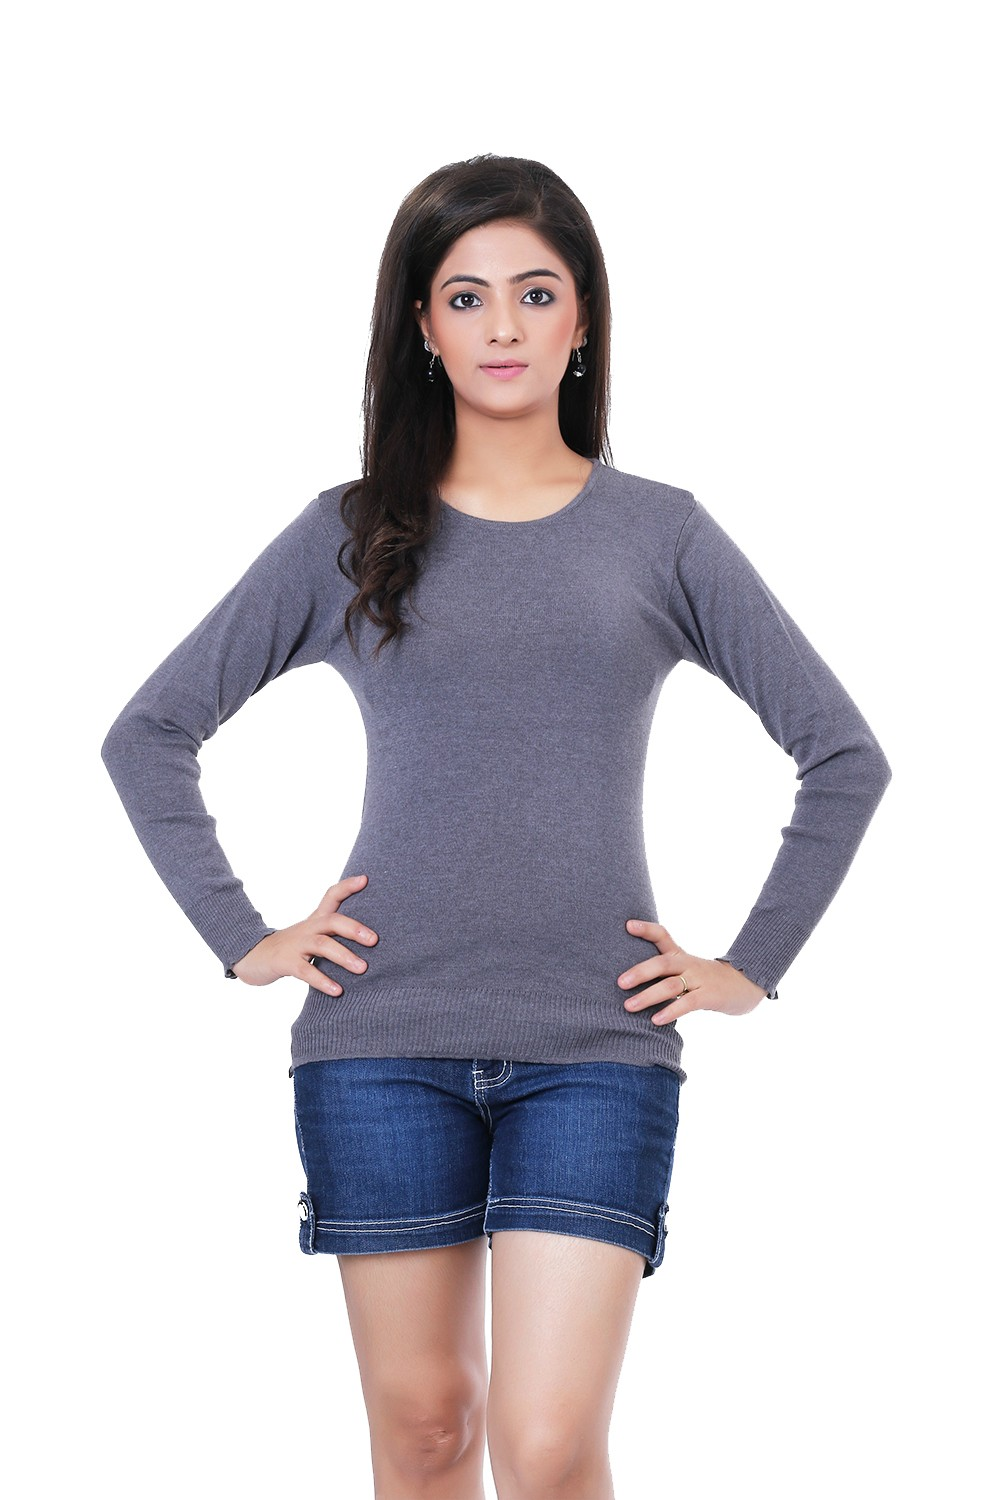 Renka Knitted Winter Pullover top - Grey Color - Women causal Wear